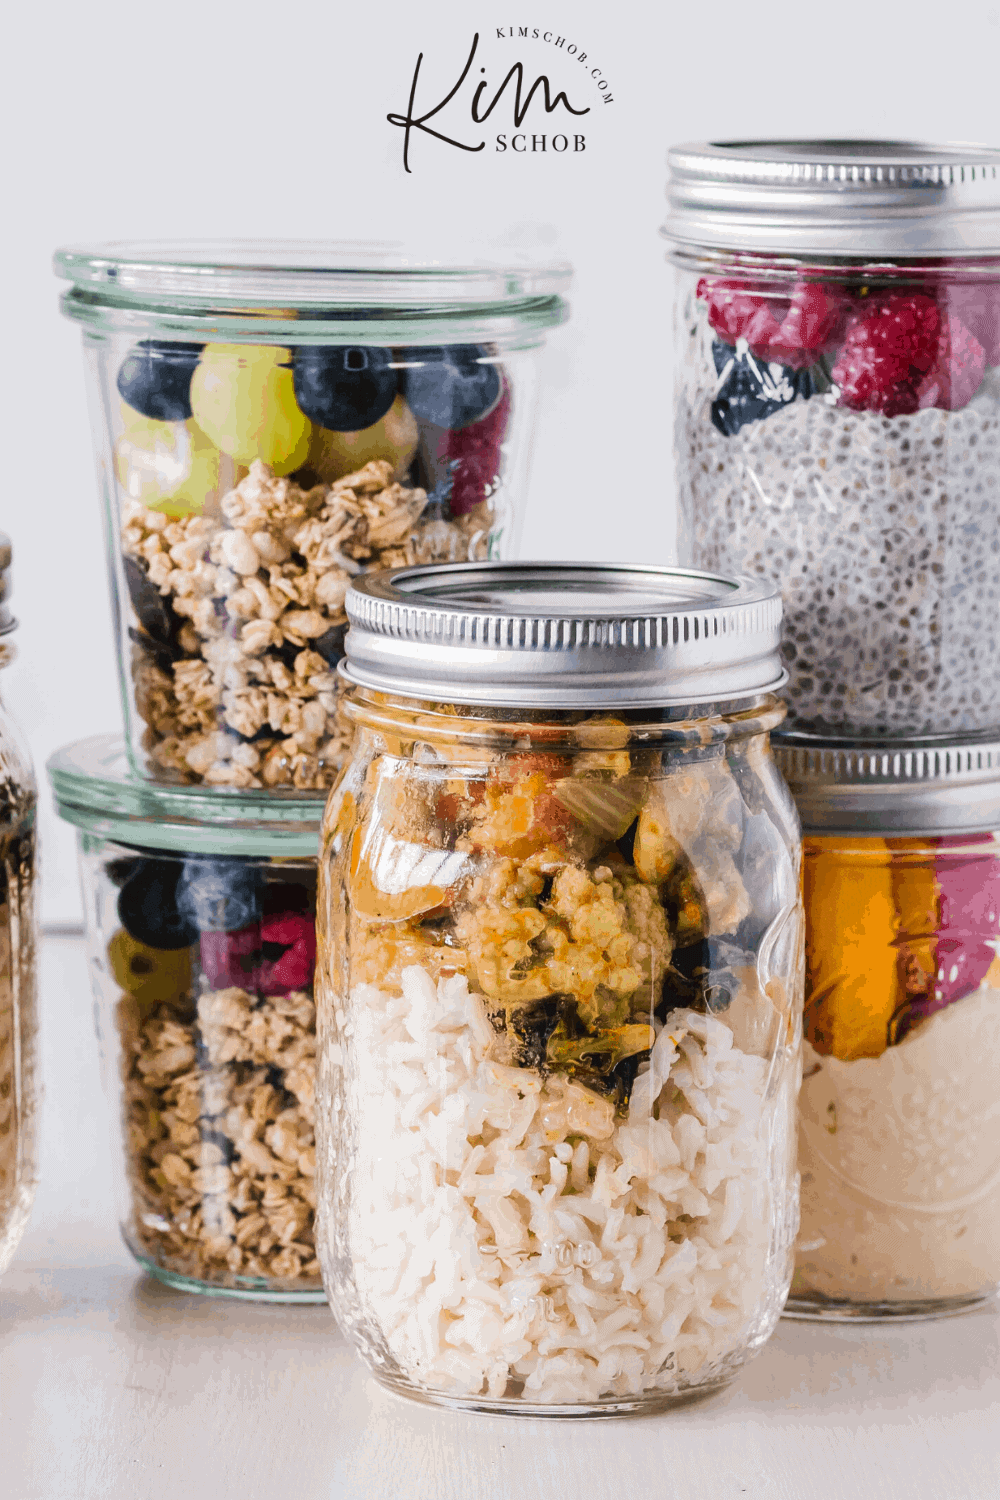 Easy Meal Prep Ideas For A Healthy New Year | kimschob.com